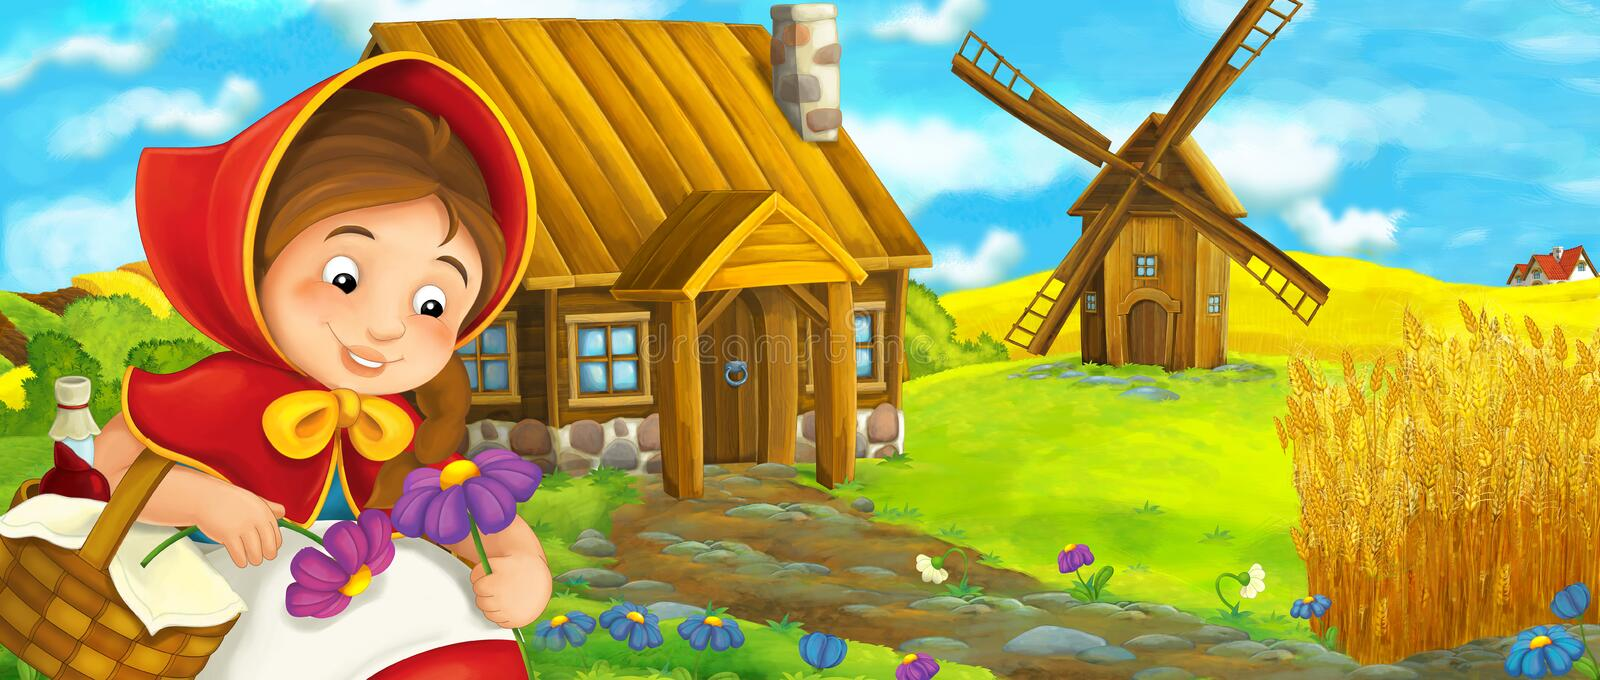 Cartoon happy farm scene with girl child near the farm house and windmill. Happy and funny traditional illustration for children - scene for different usage vector illustration